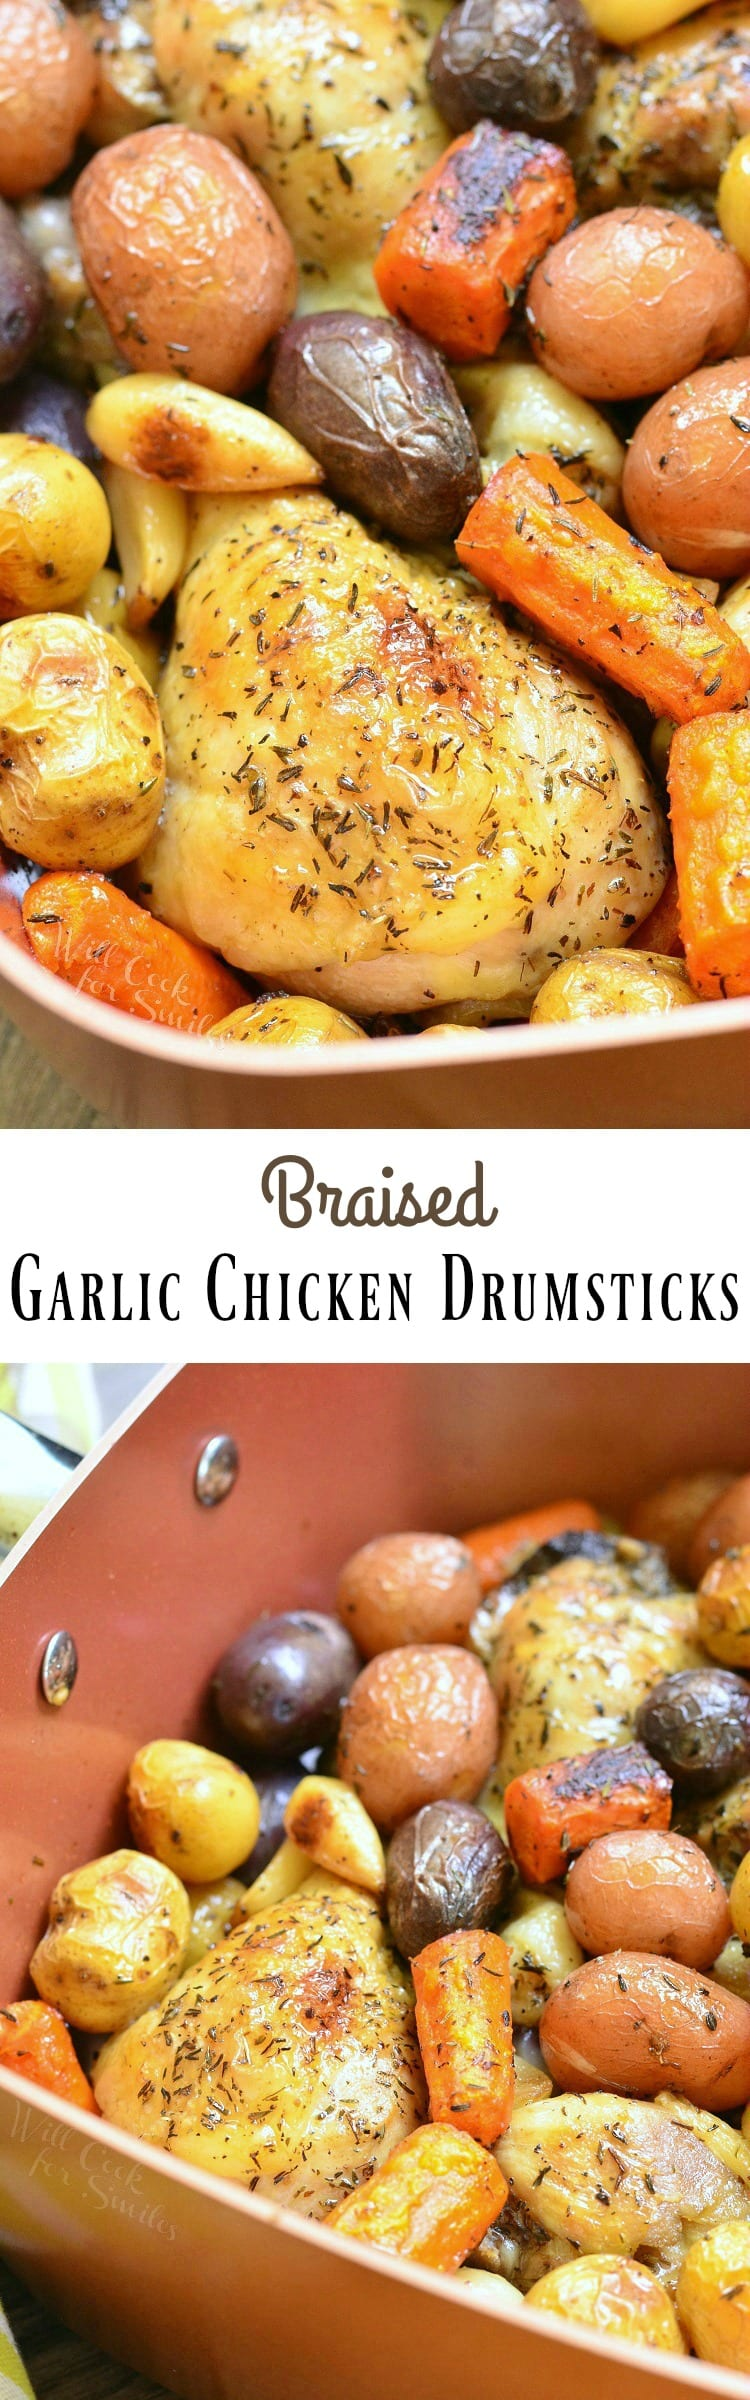 Braised Garlic Chicken Drumsticks. Juicy, tender chicken drumsticks braised and infused with garlic and thyme. Cooked with veggies for a complete, one-pot meal.